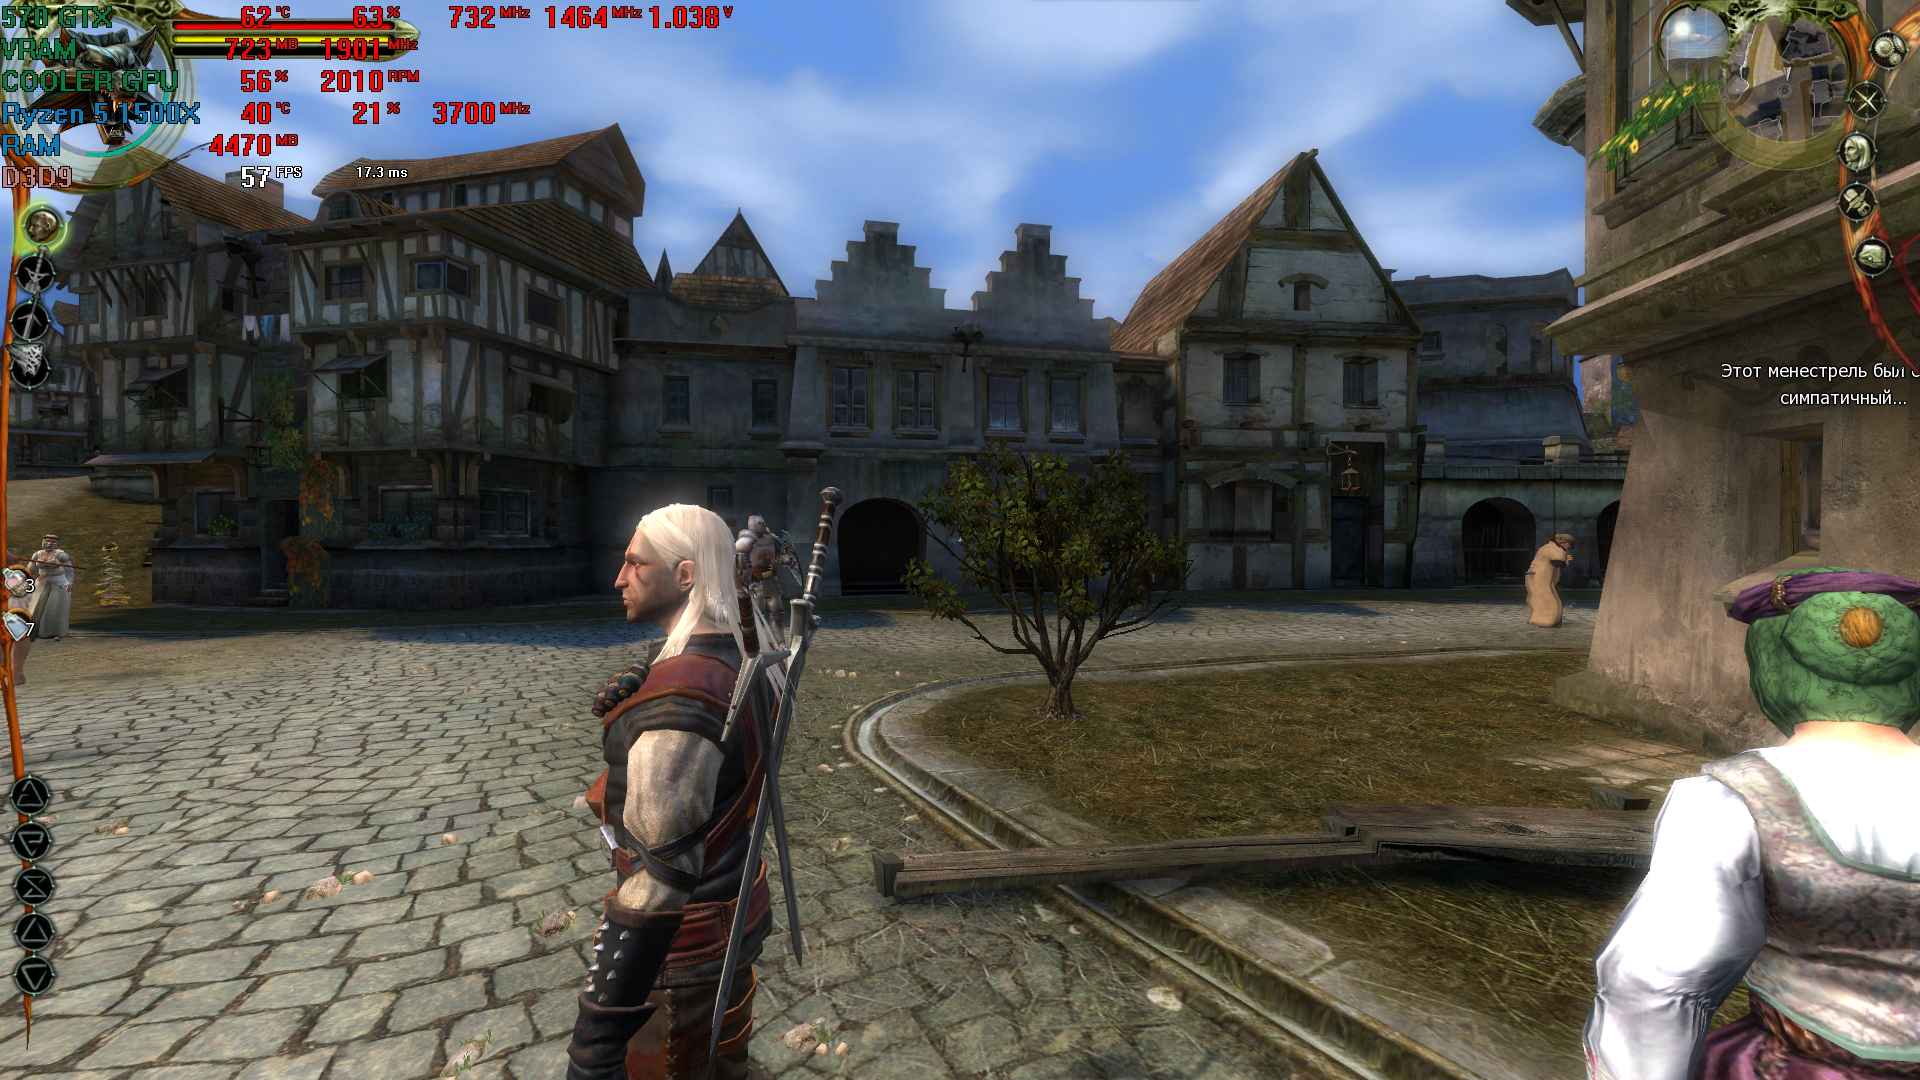 witcher_2018_07_02_23_36_20_715.png - Witcher, the